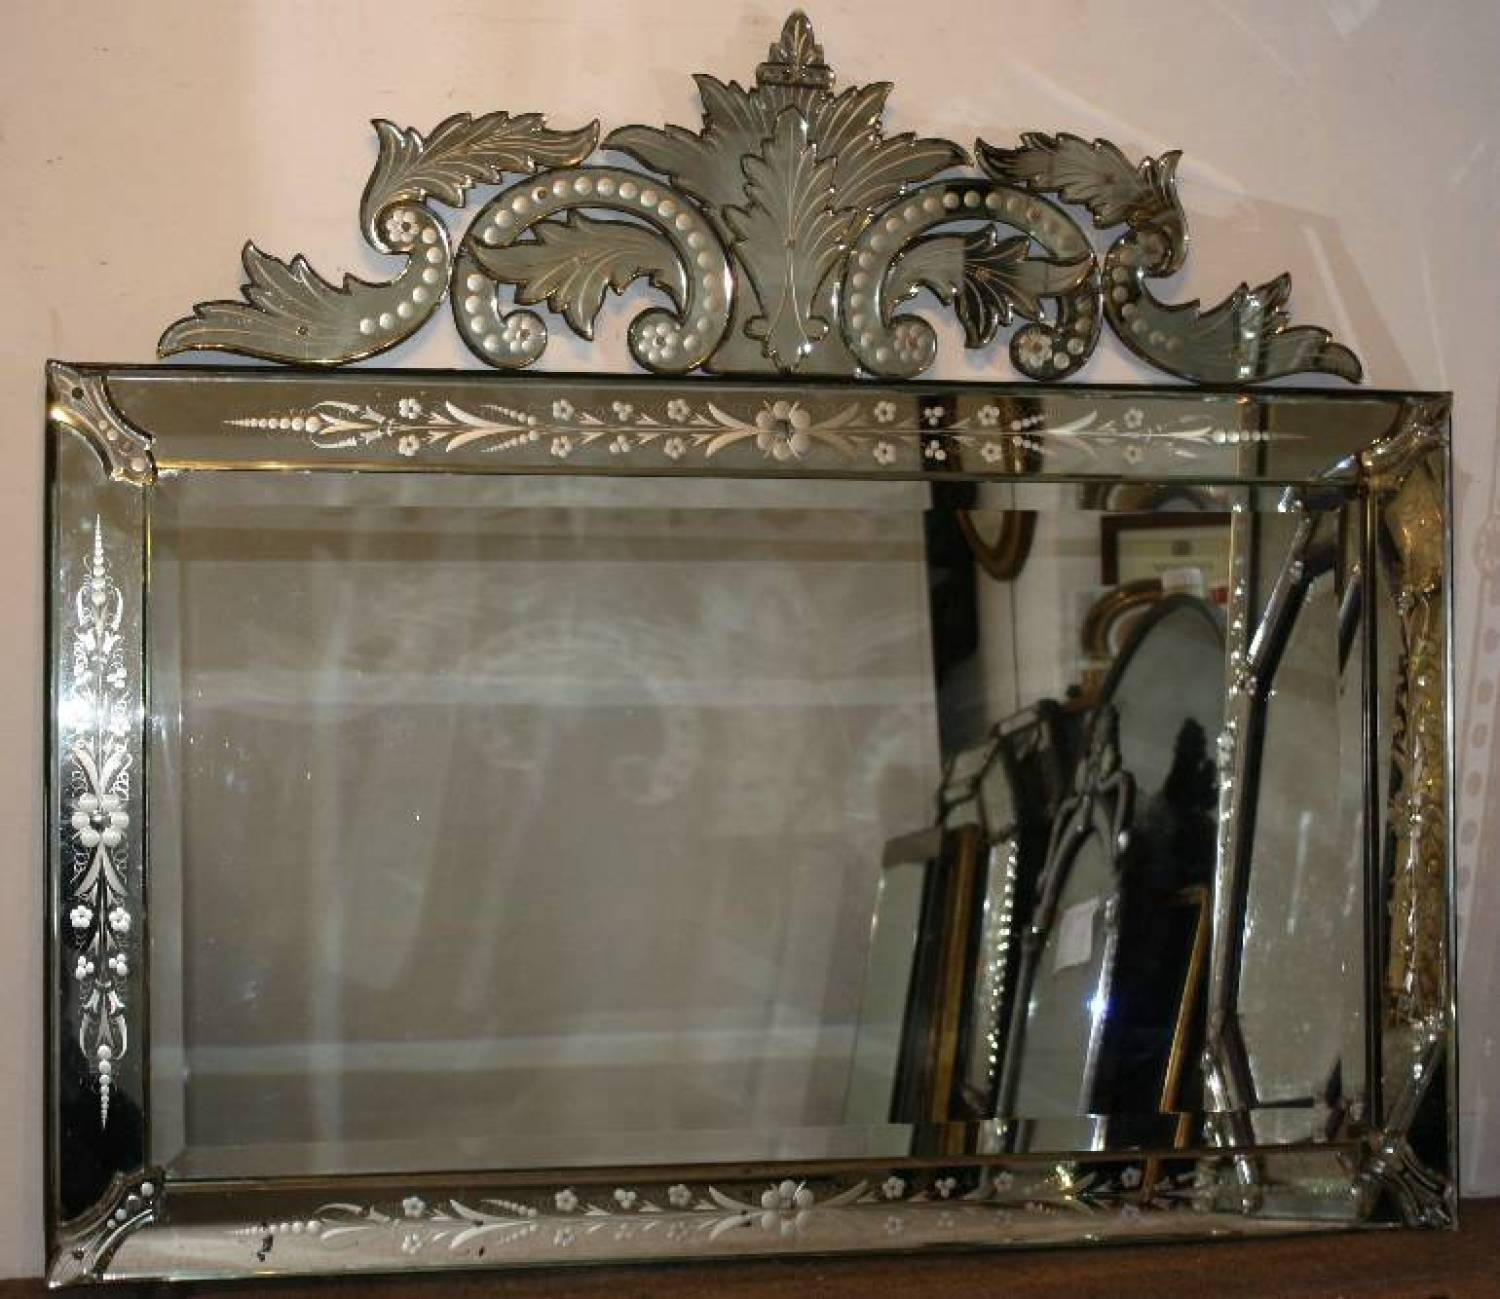 Interior: Collosal Antique Venetian Mirror For Home Decorating inside Cheap Venetian Mirrors (Image 4 of 15)